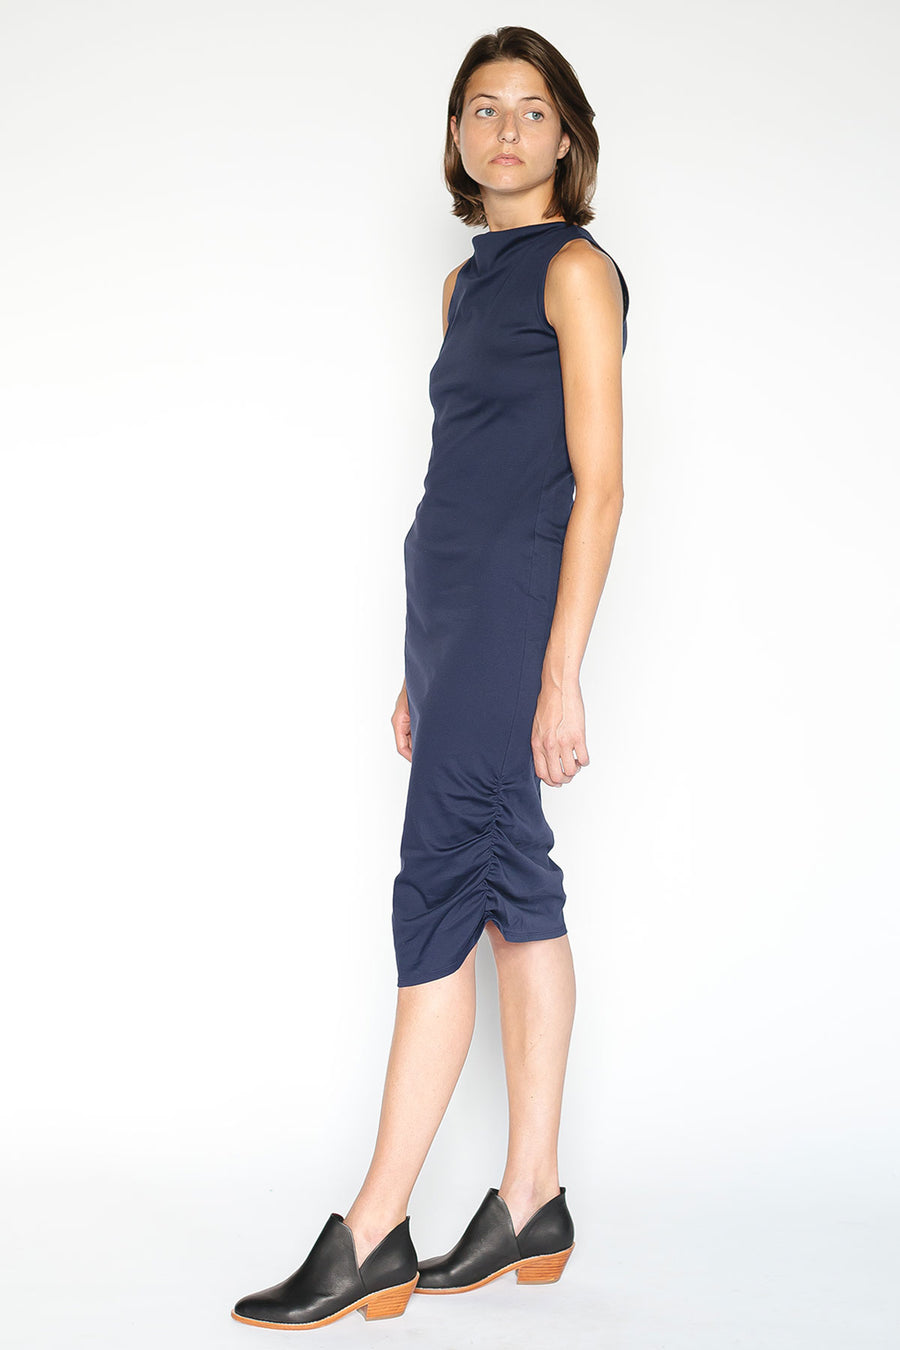 Slim fit navy Dress